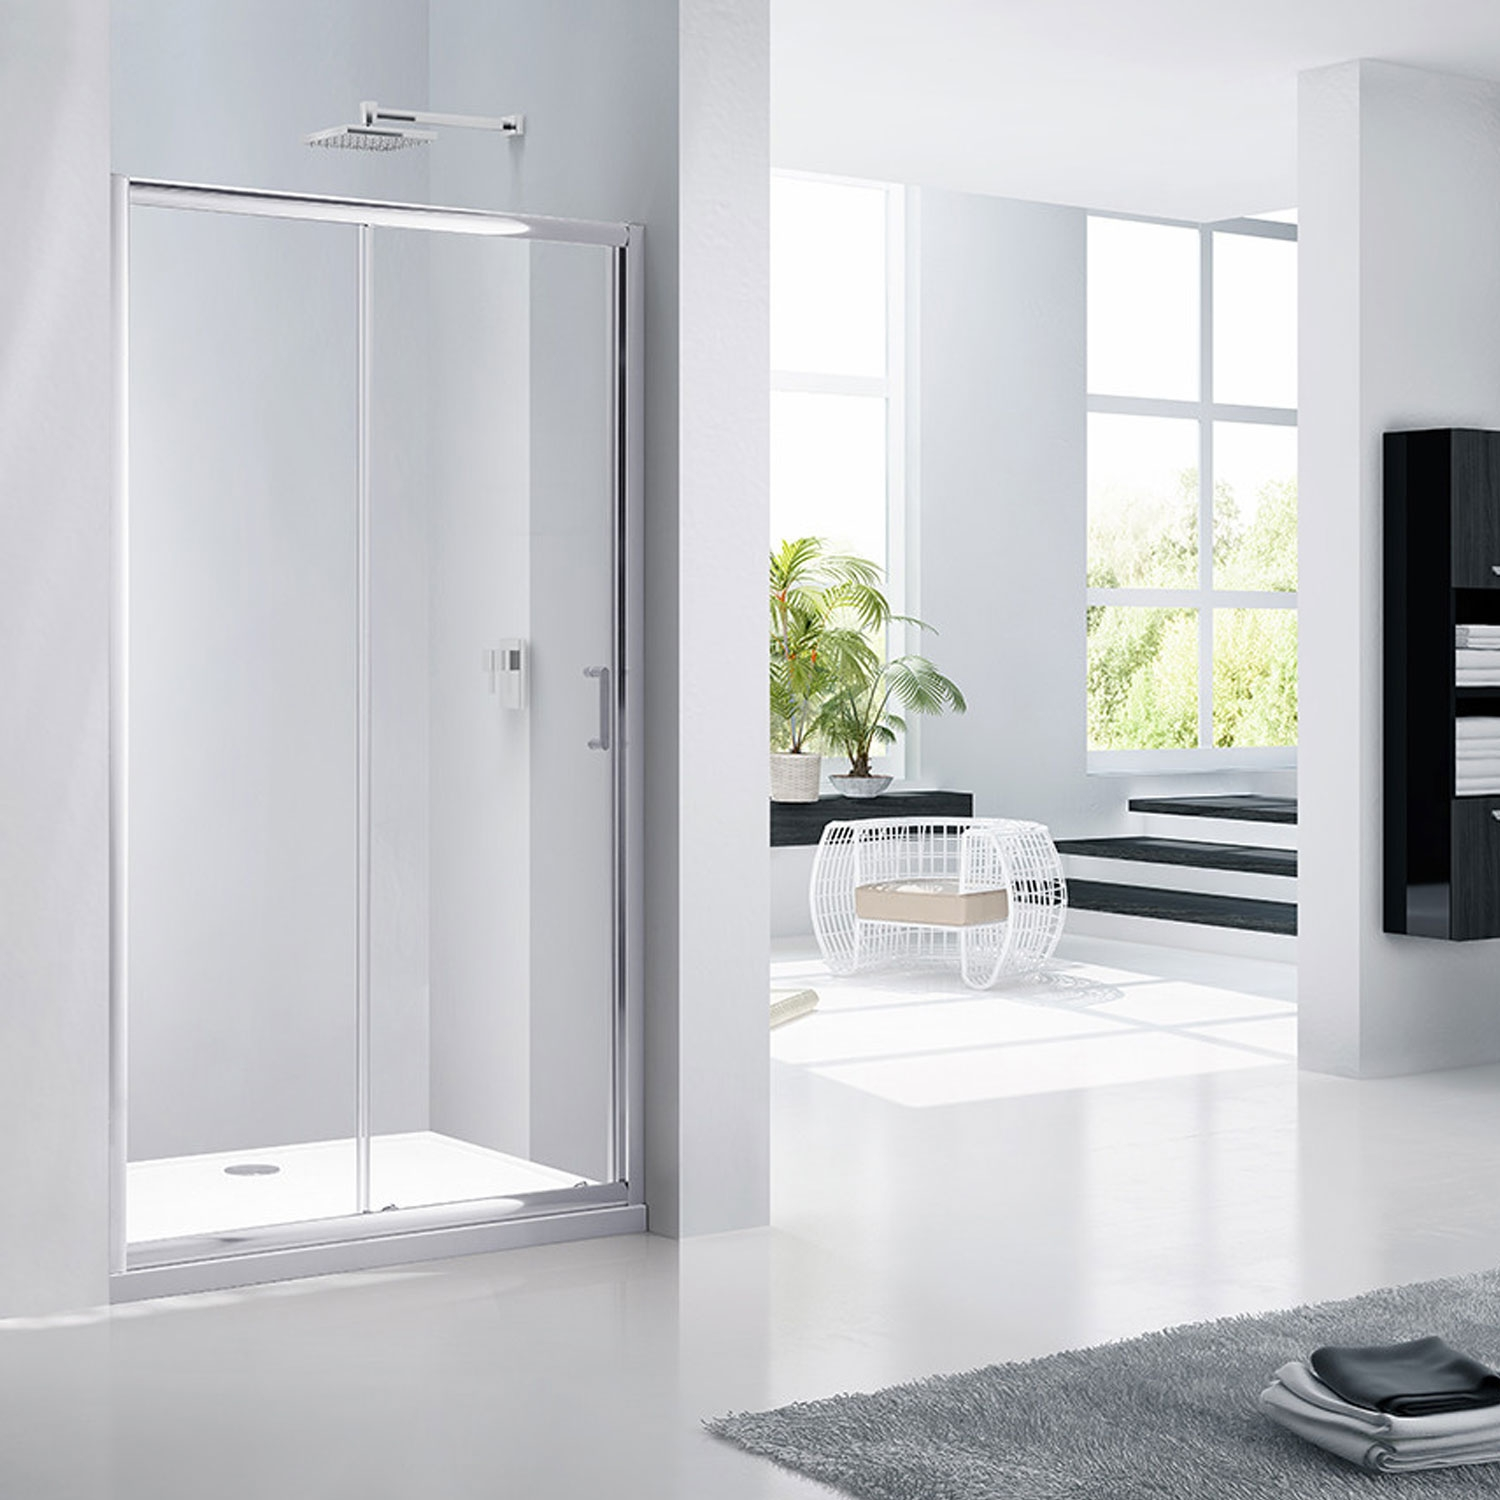 Verona Aquaglass Purity Sliding Shower Door 1200mm Wide - 6mm Glass